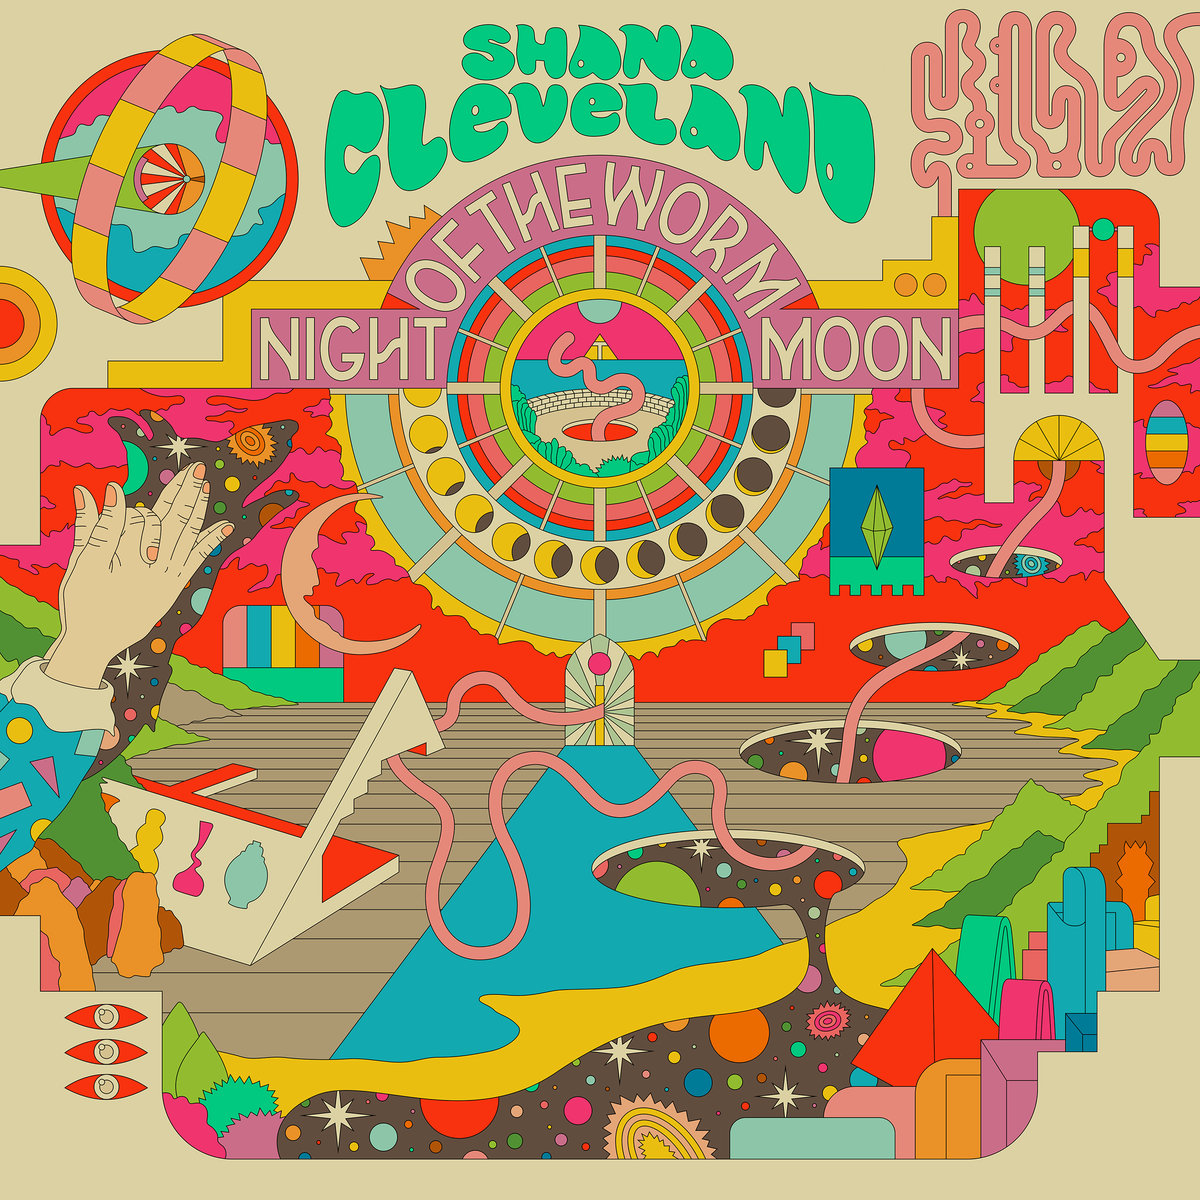 SHANA CLEVELAND - NIGHT OF THE WORM MOON -buythewax